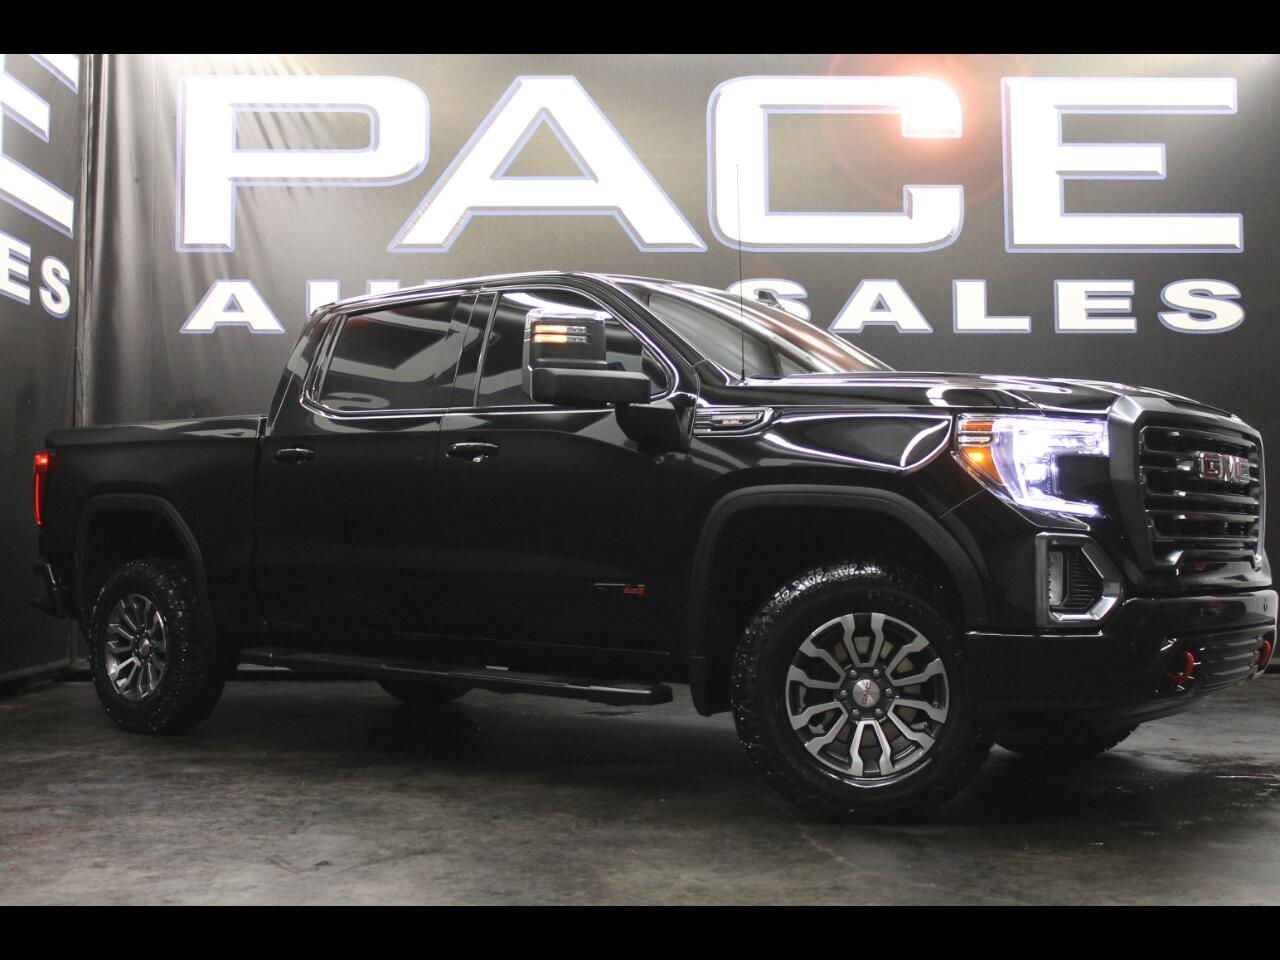 Used 2020 Gmc Sierra 1500 Sold In Hattiesburg Ms 39402 Pace Auto Sales